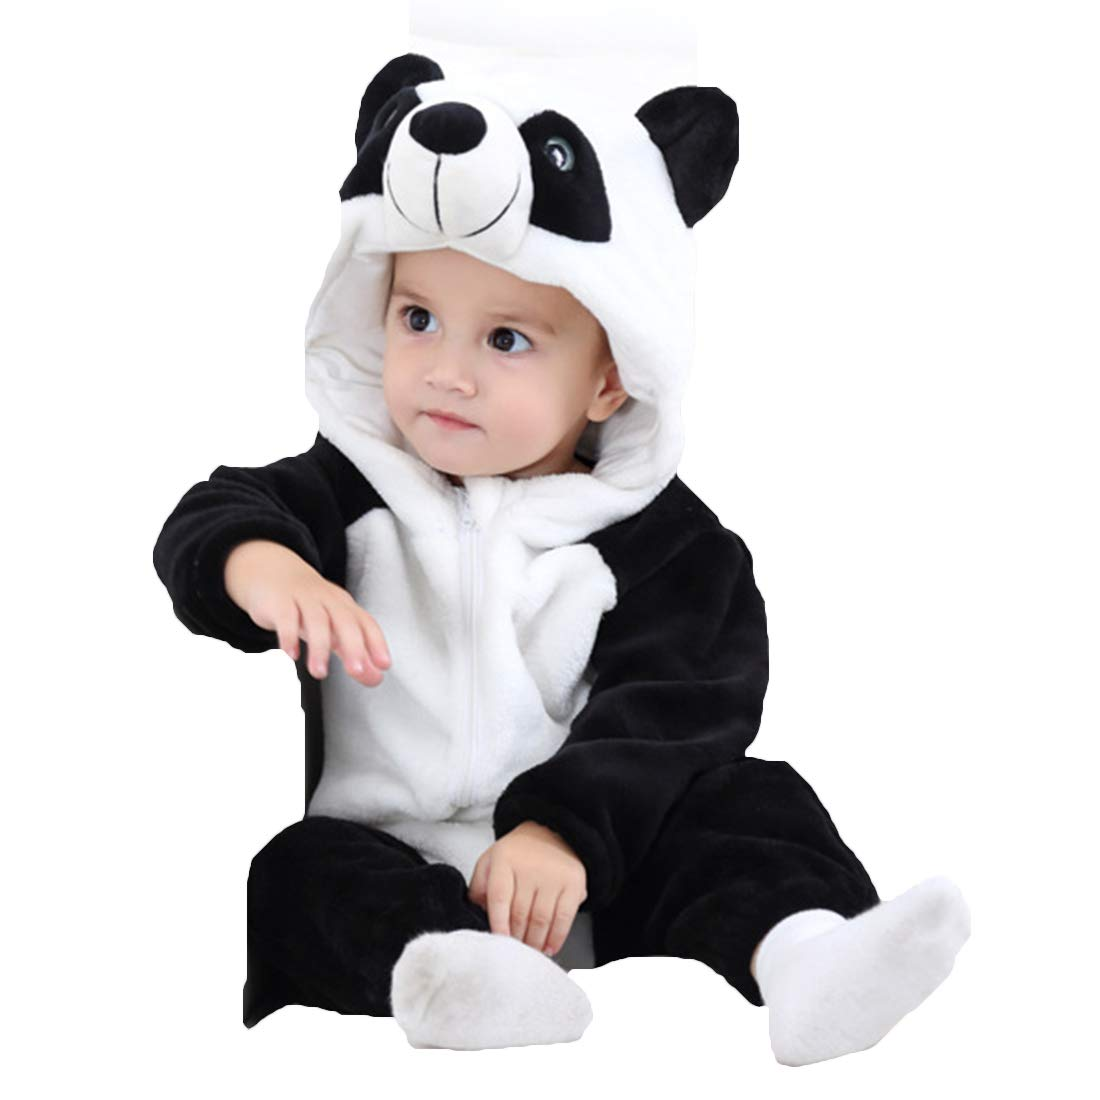 YANGXING Baby Kids Boys Girls Onepiece Winter Romper Pajamas Jumpsuit Halloween Coaplay Outfits